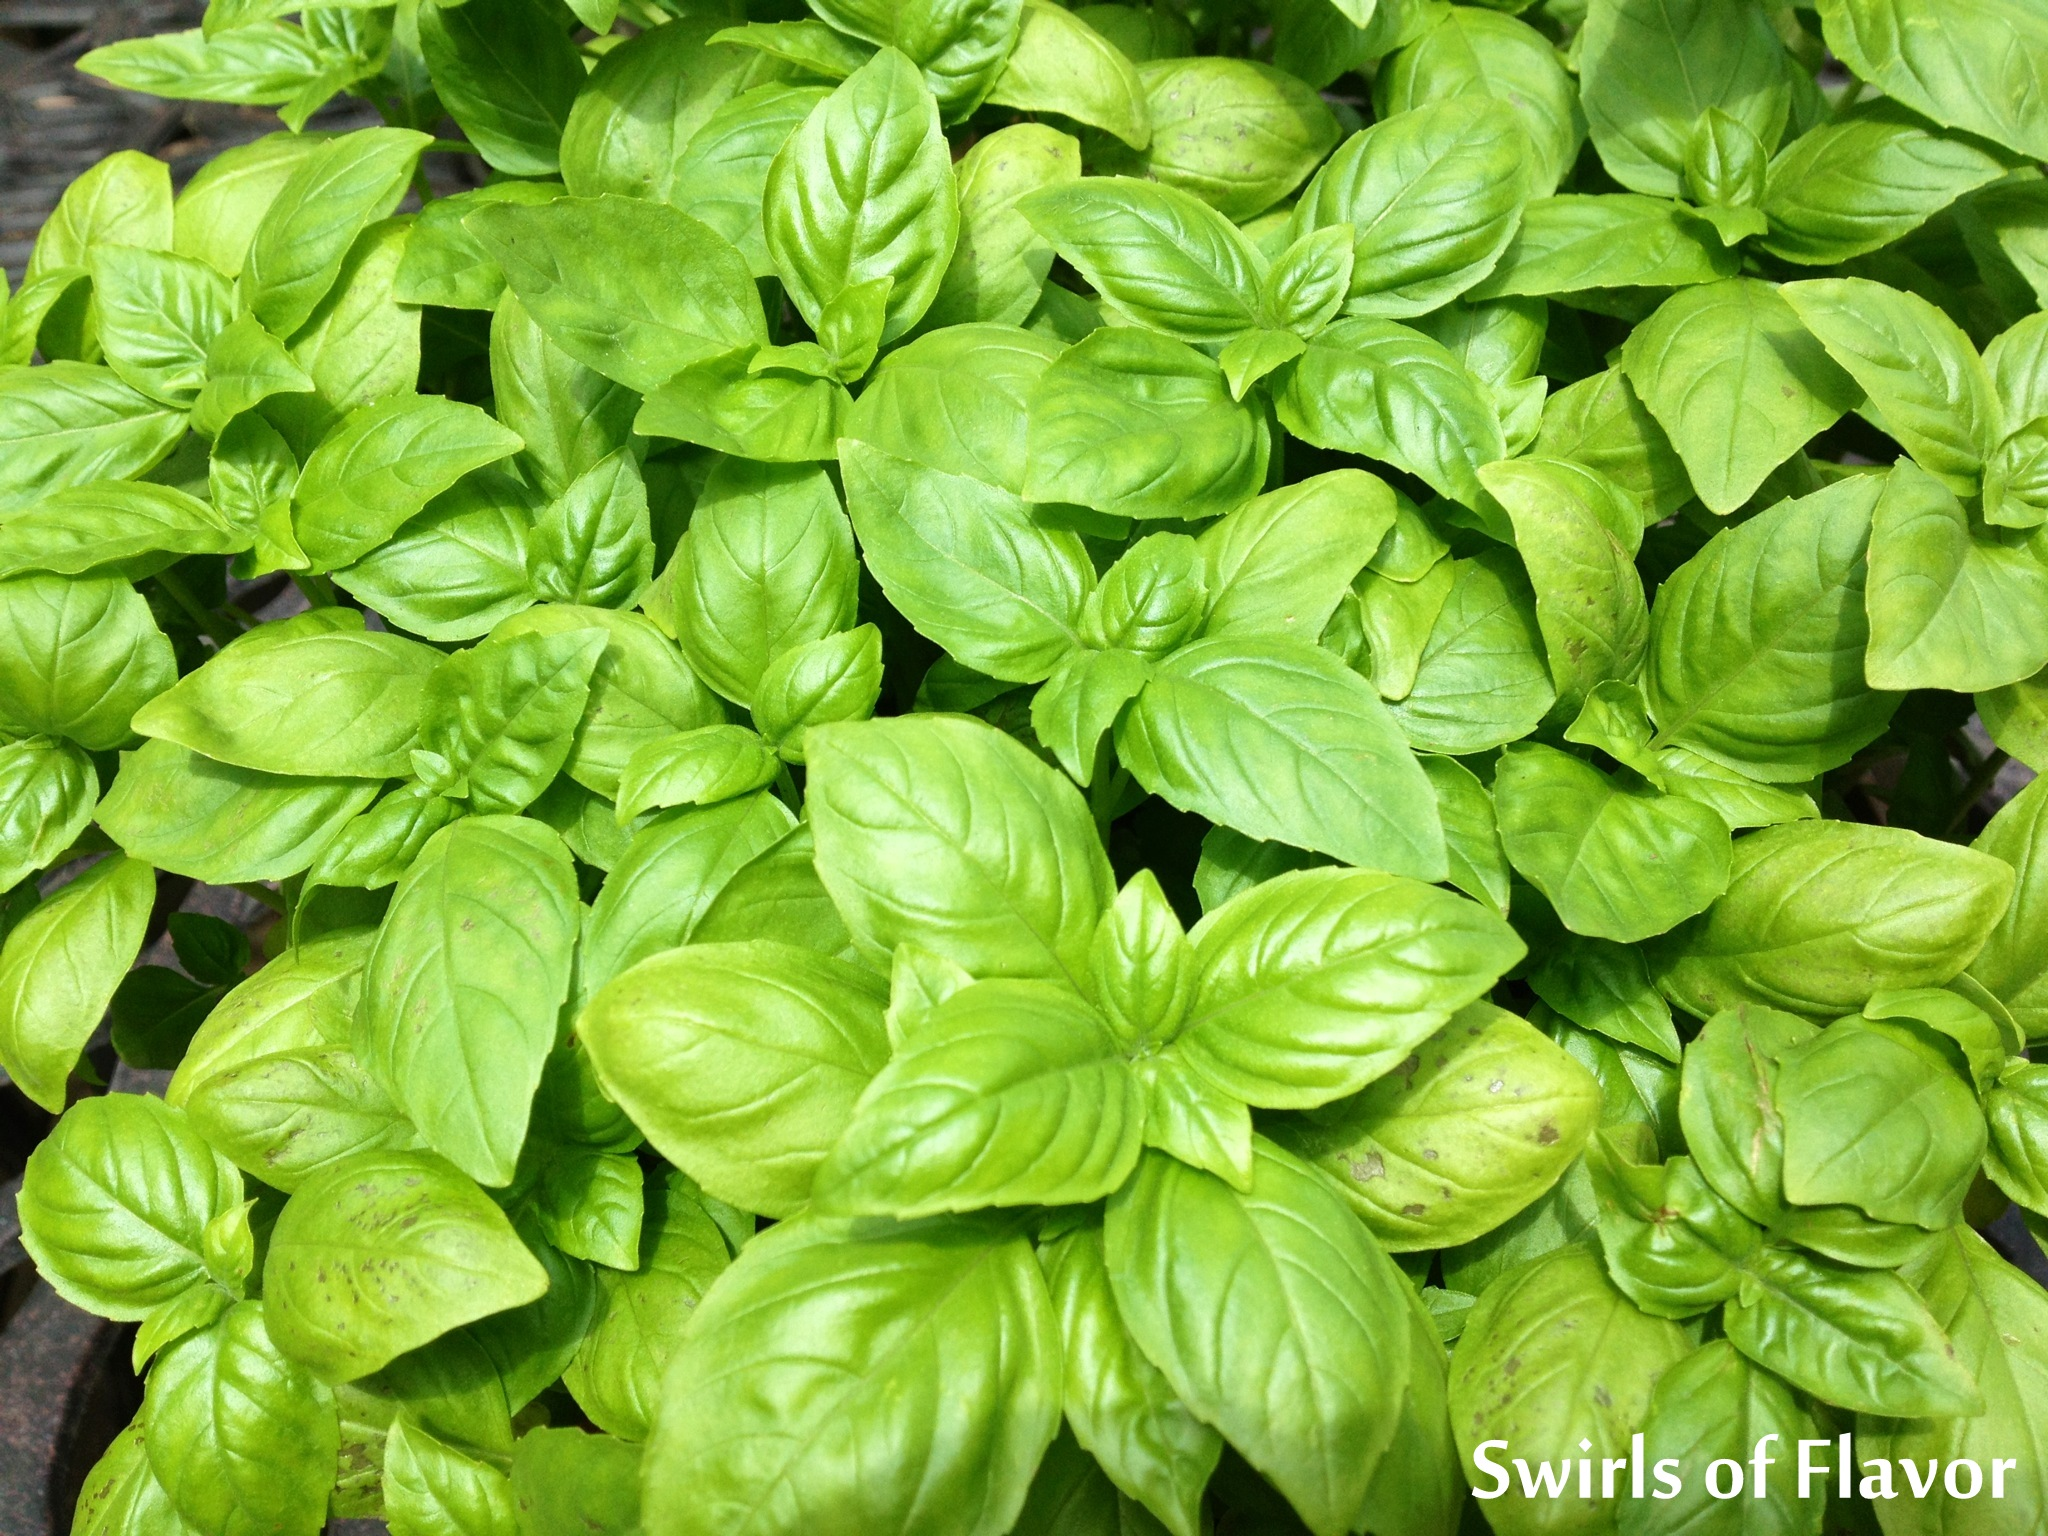 Basil Pesto is bursting with the flavors of extra virgin olive oil, fresh basil leaves from my garden, Parmesan cheese for texture and saltiness, lemon juice and zest for a bright note and the unexpected nuttiness of toasted almonds. #pesto #summer #summerrecipe #easyrecipe #basil #almonds #farmersmarket #swirlsofflavor